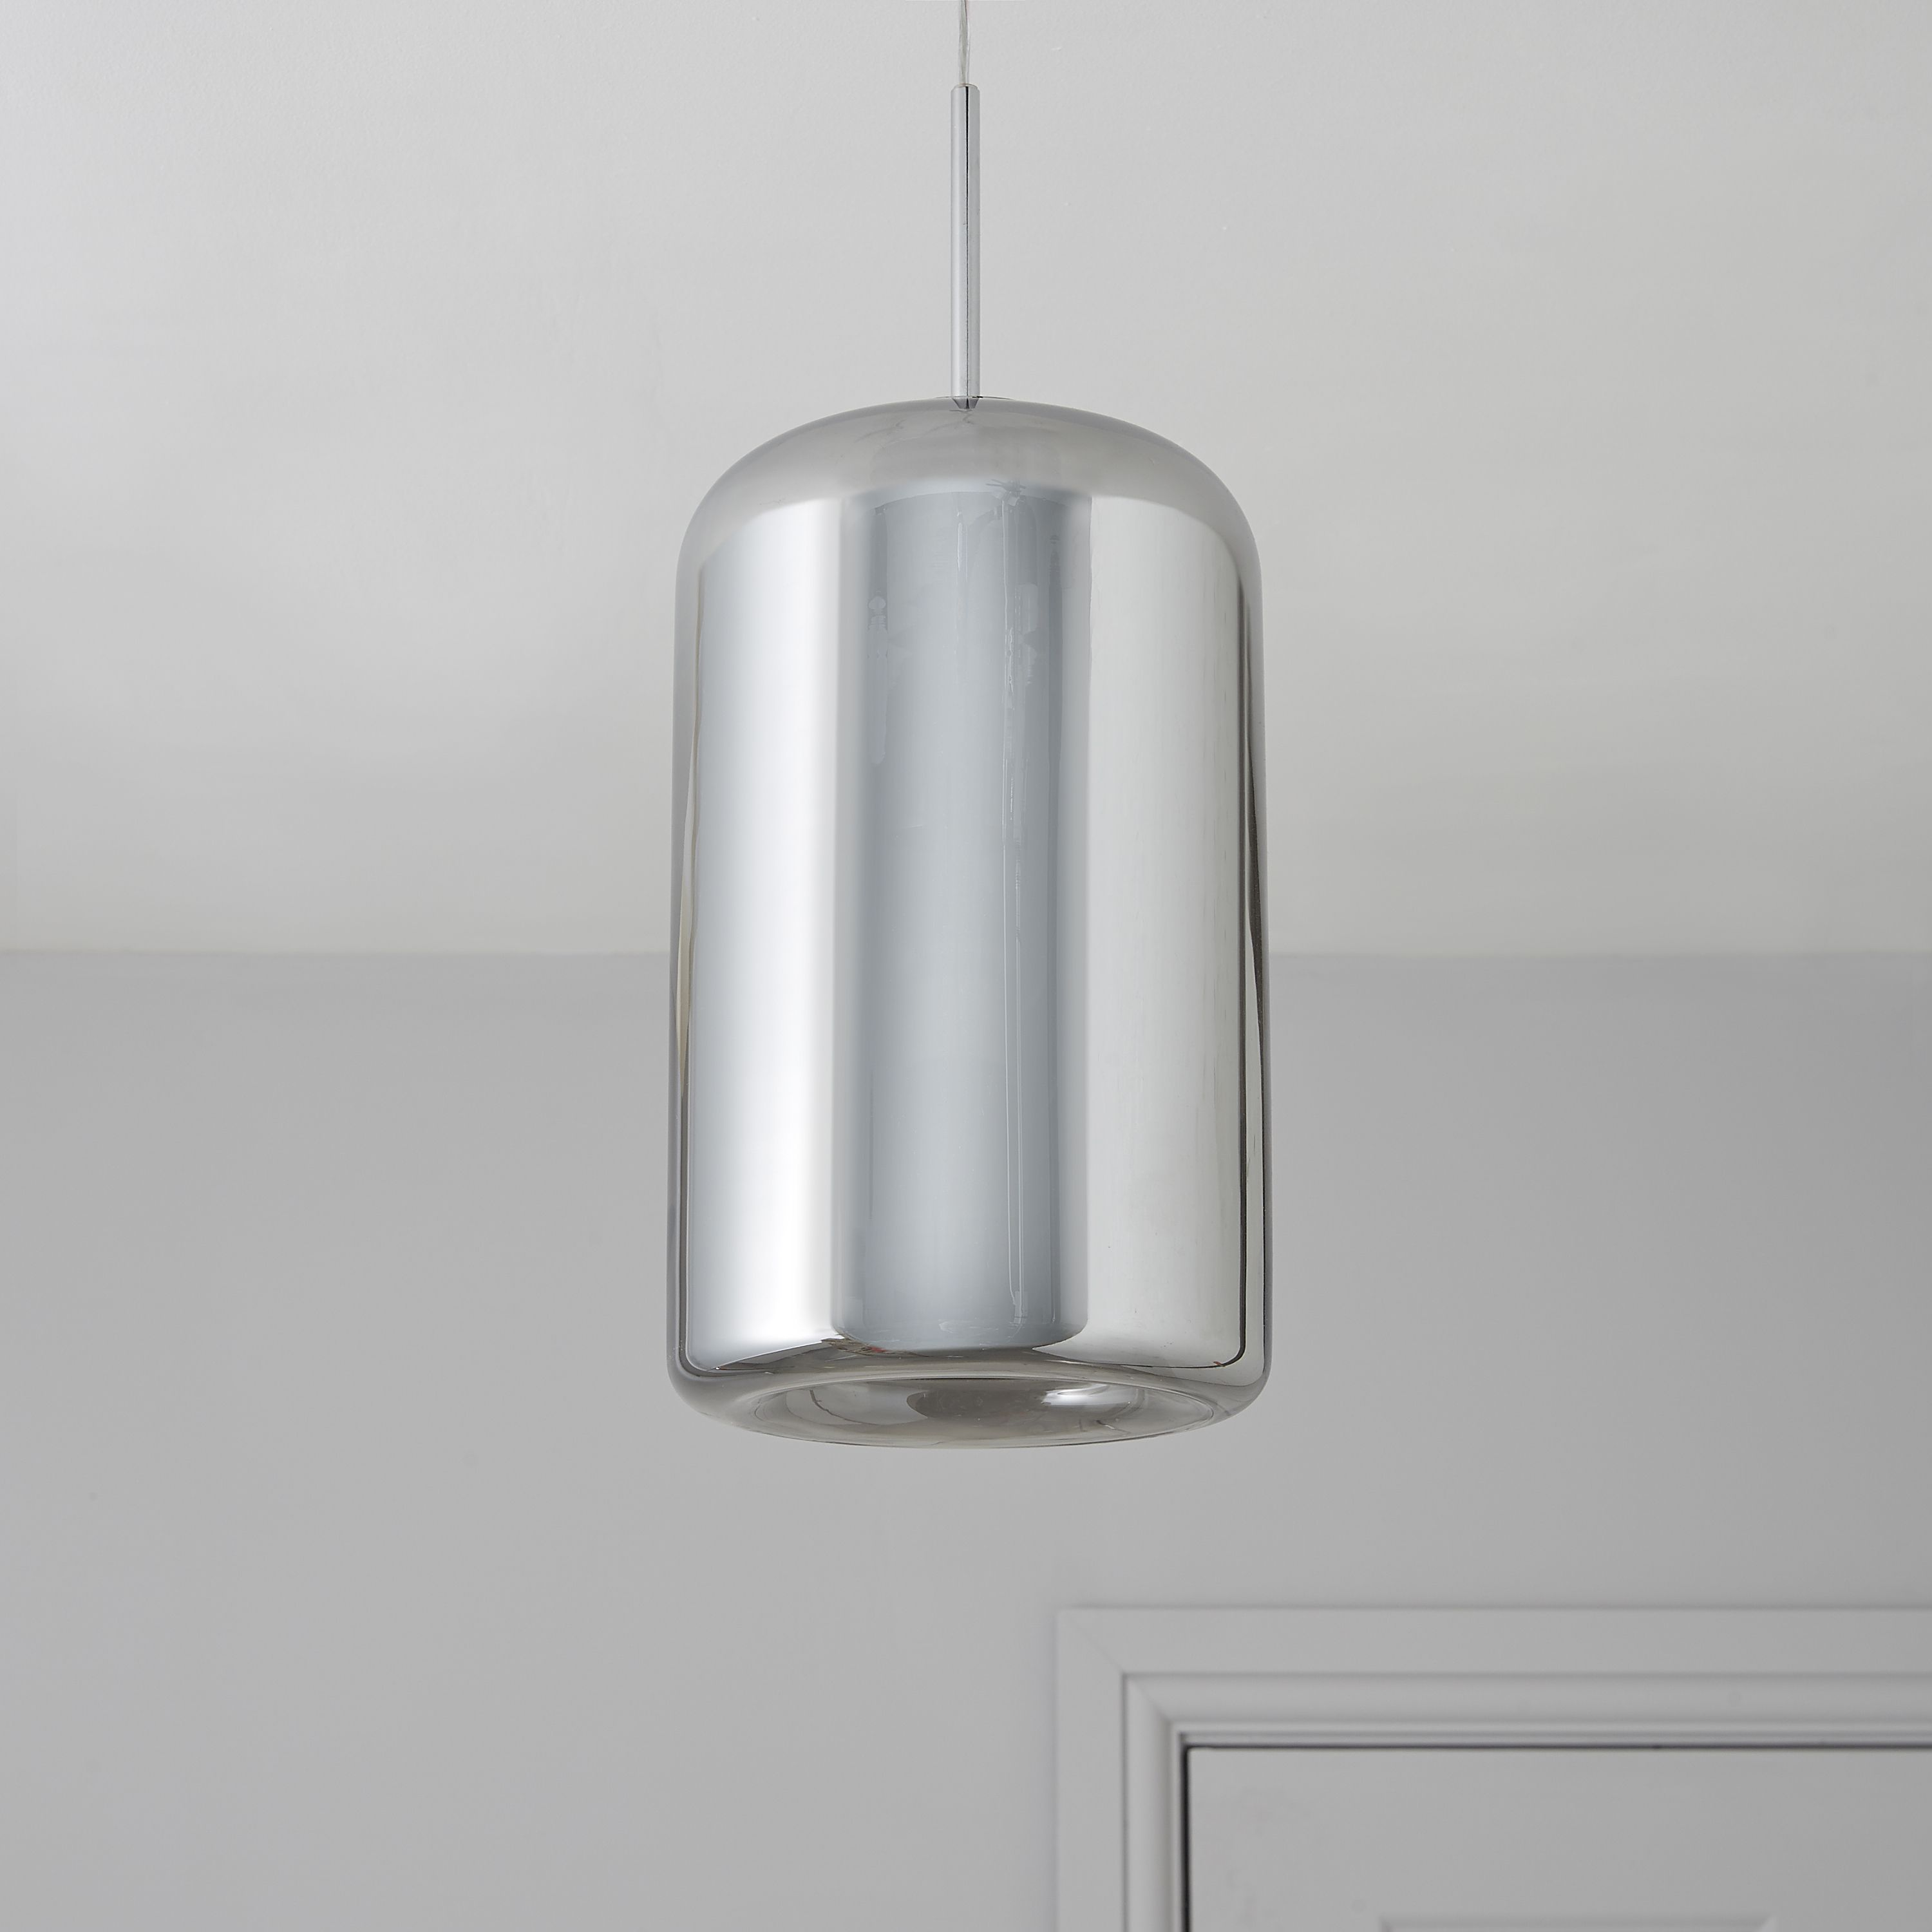 Bathroom Ceiling Lights At B&Q kynes smoked chrome effect pendant ceiling light | departments